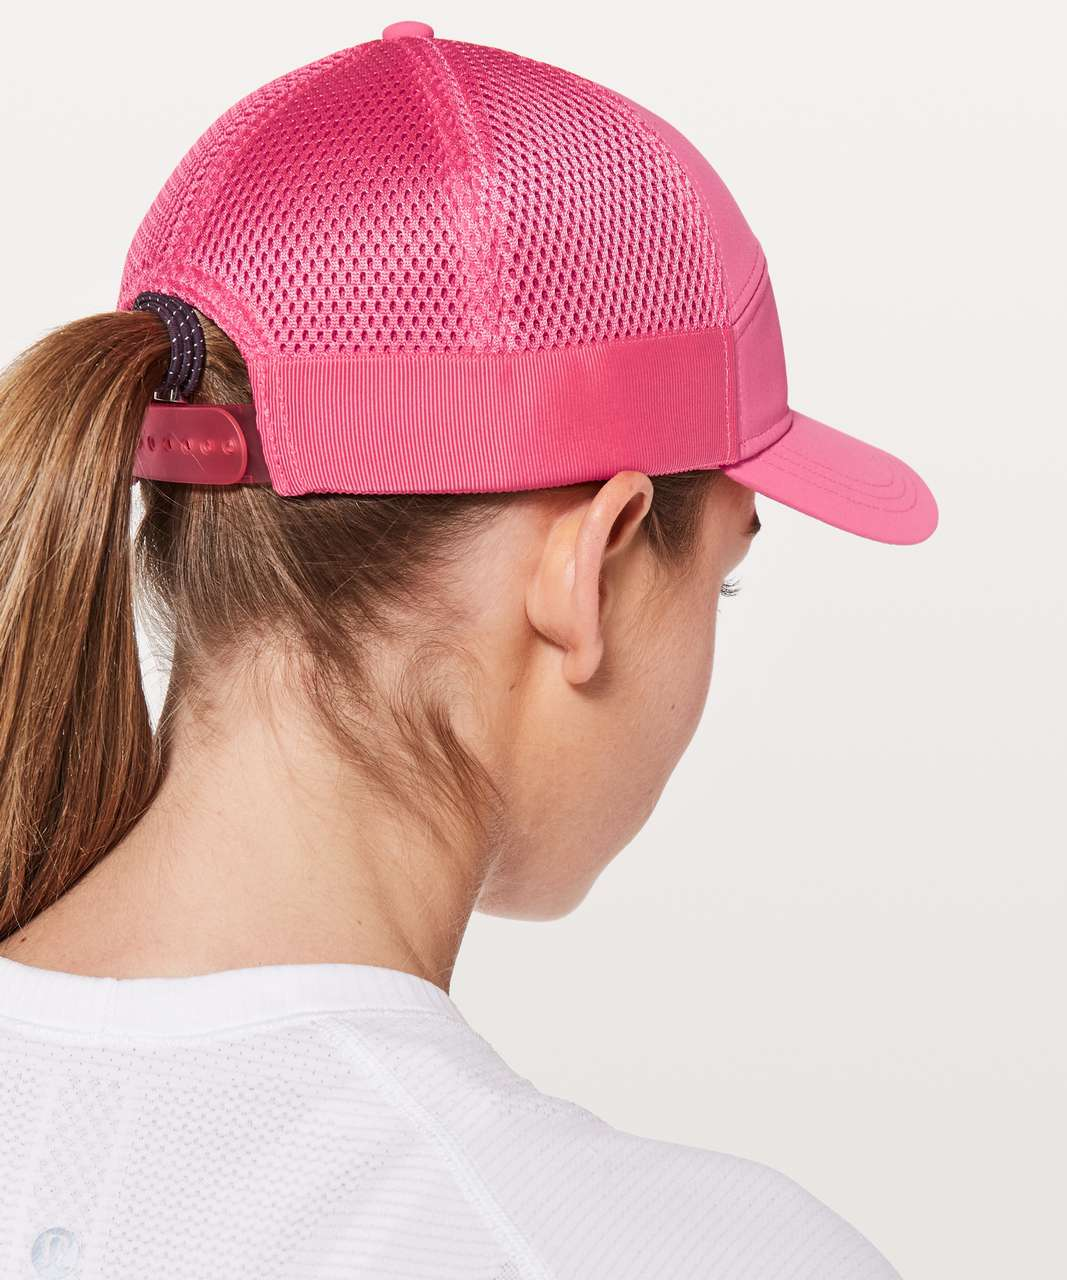 Lululemon Dash & Splash Cap II - Glossy